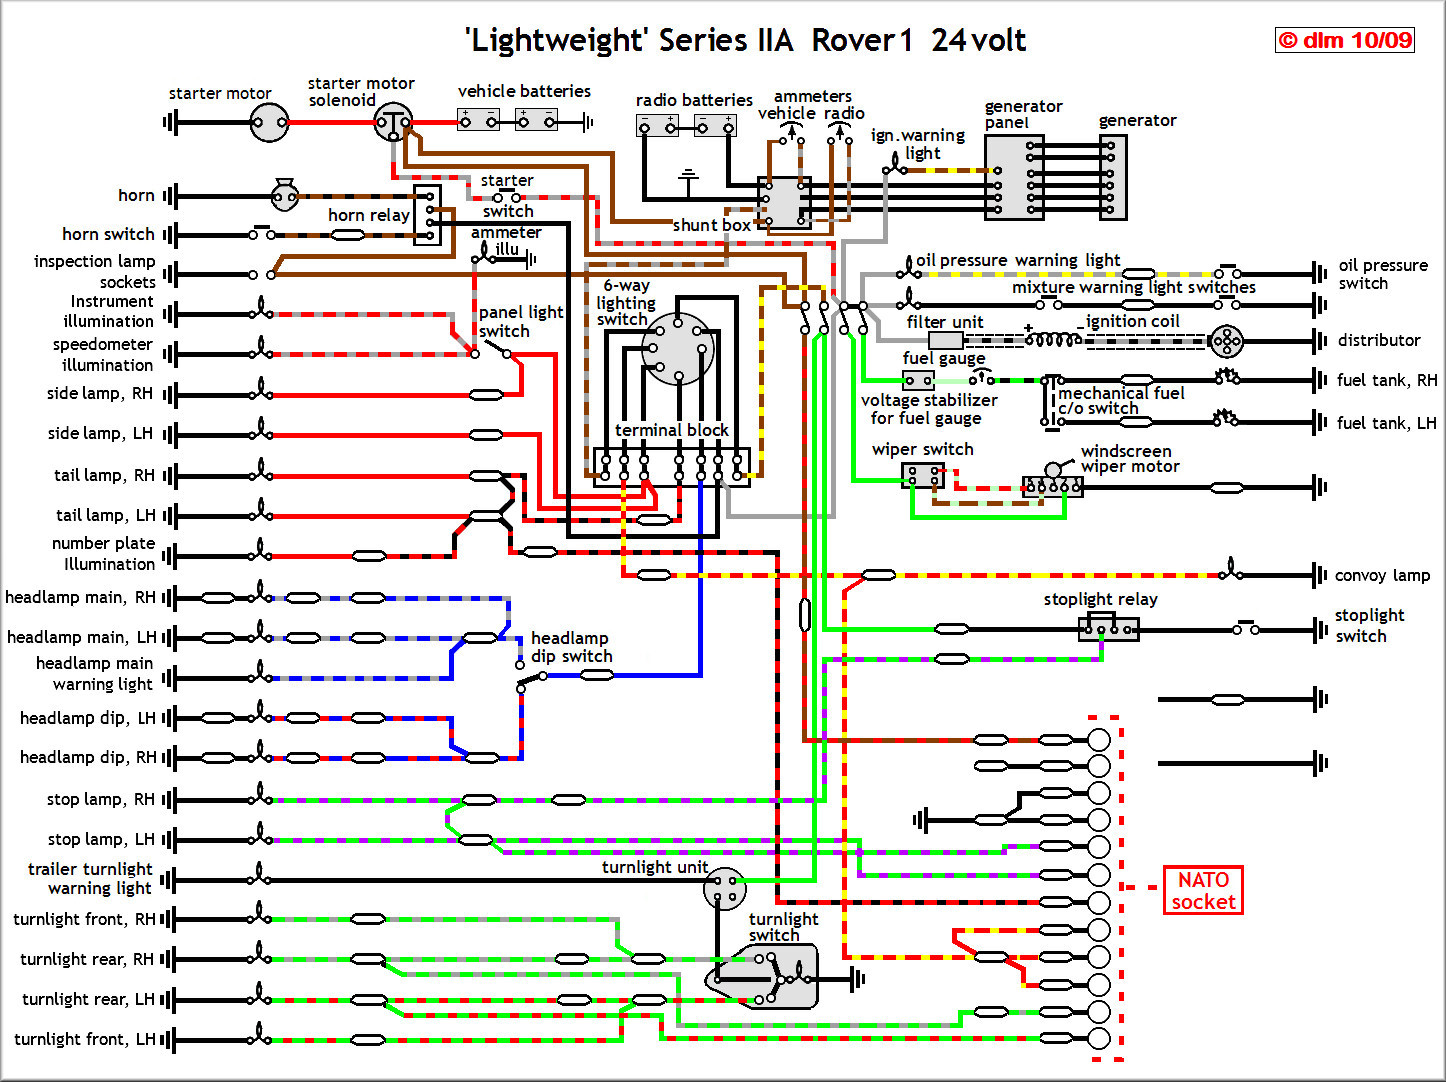 rover1 24Av lr3 trailer wiring diagram 7 pin trailer wiring diagram \u2022 wiring 2006 land rover lr3 wiring diagram at gsmx.co